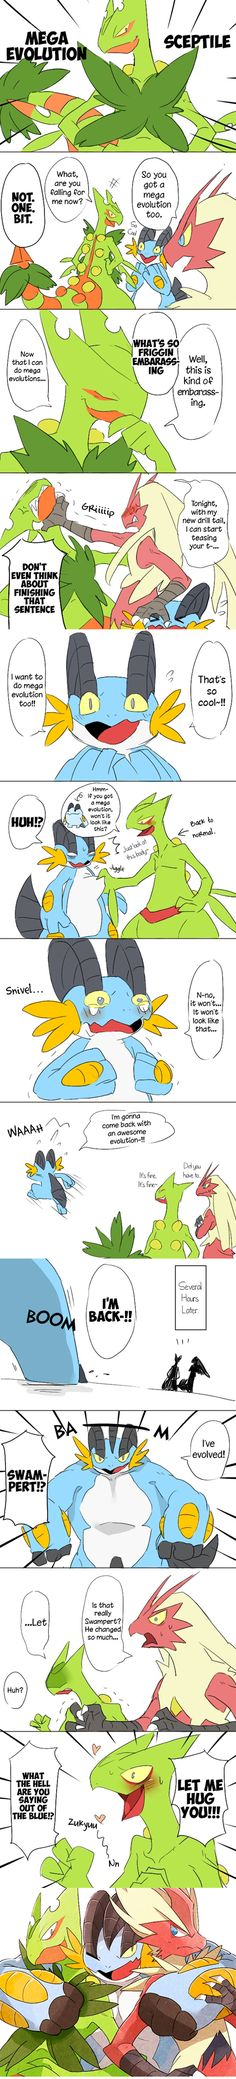 Mega!!! (Swampert's the best in my opinion!)